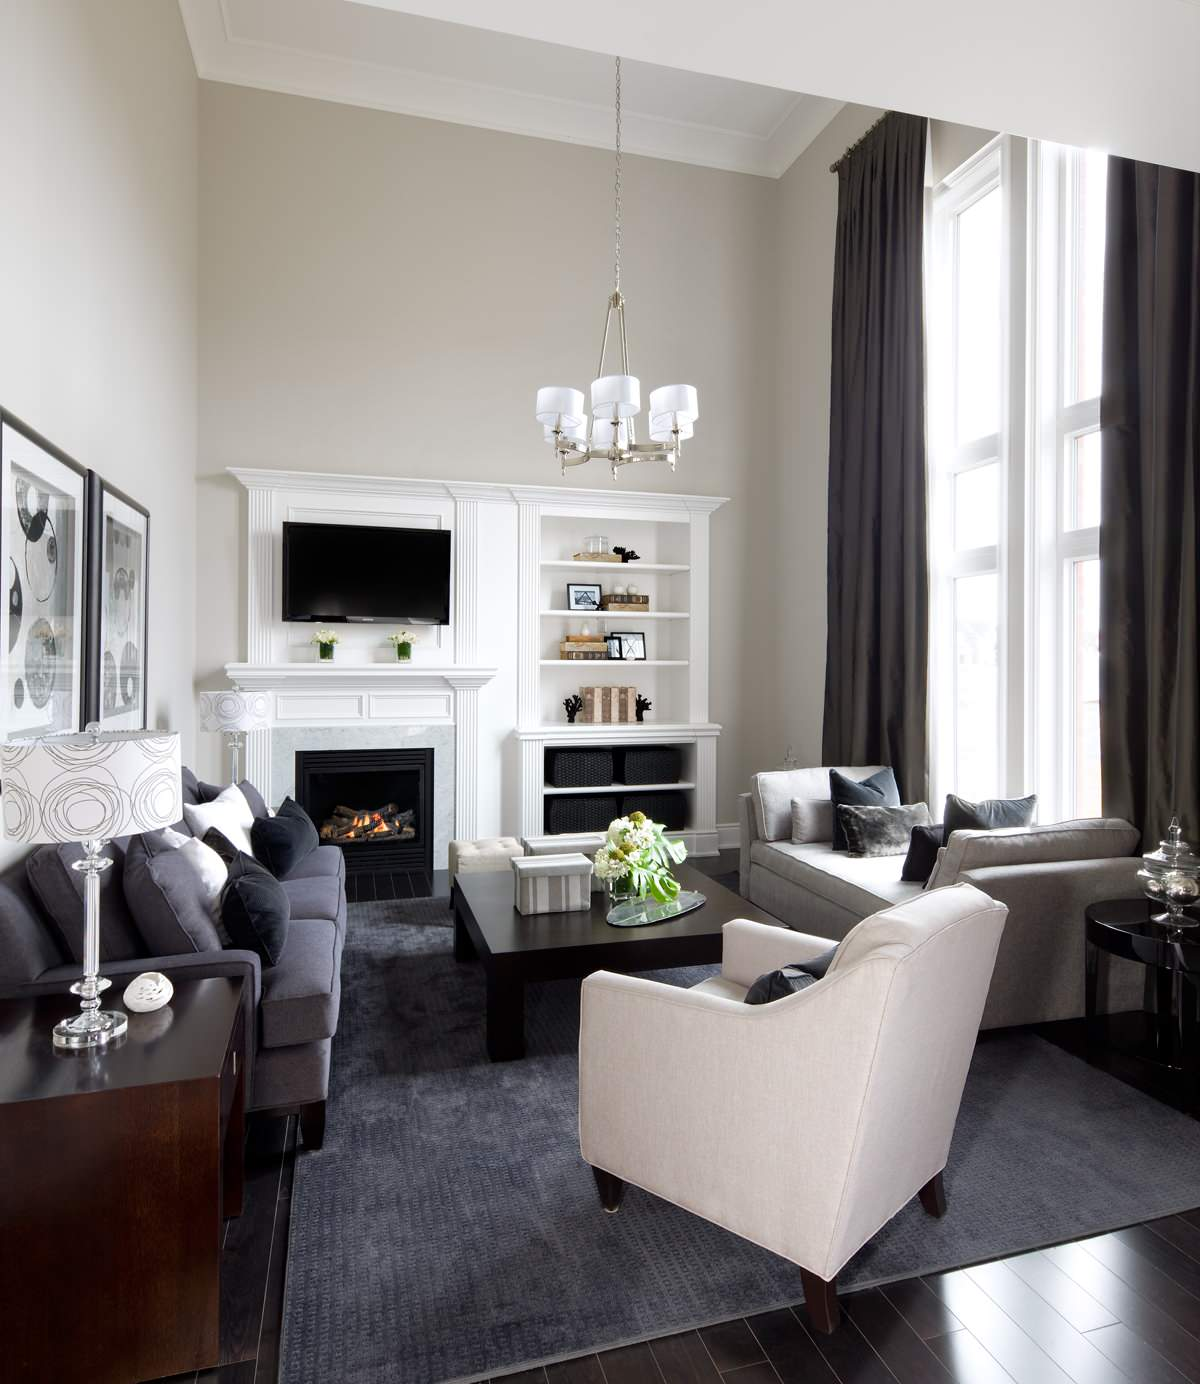 Decorating Room Using Modern Daybed Ideas: Traditional Family Room Plus Built In Bookshelves And Built In Fireplace With Chandelier Shades Also Contemporary Sofa Plus Modern Daybed On Dark Floors With High Ceilings And Tall Windows